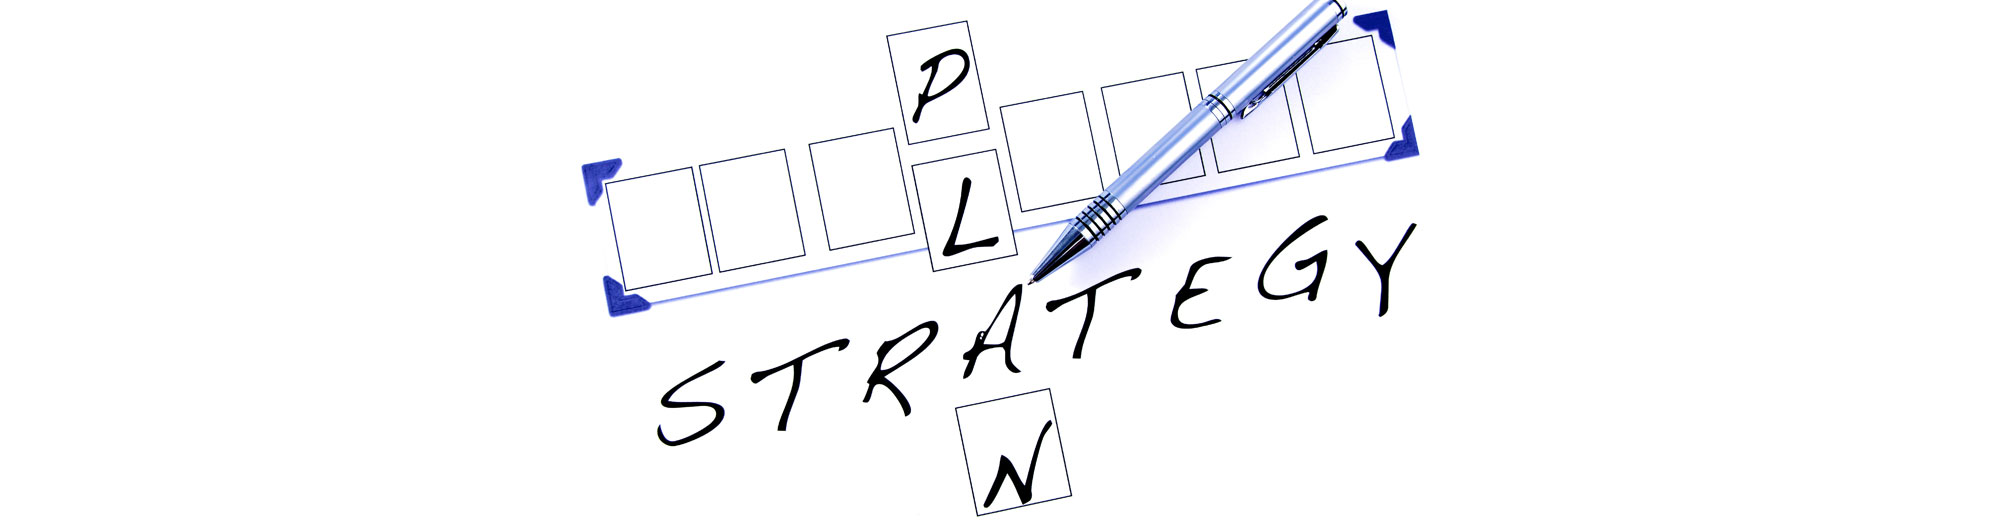 Good Business Strategy | Strategenic Limited, London